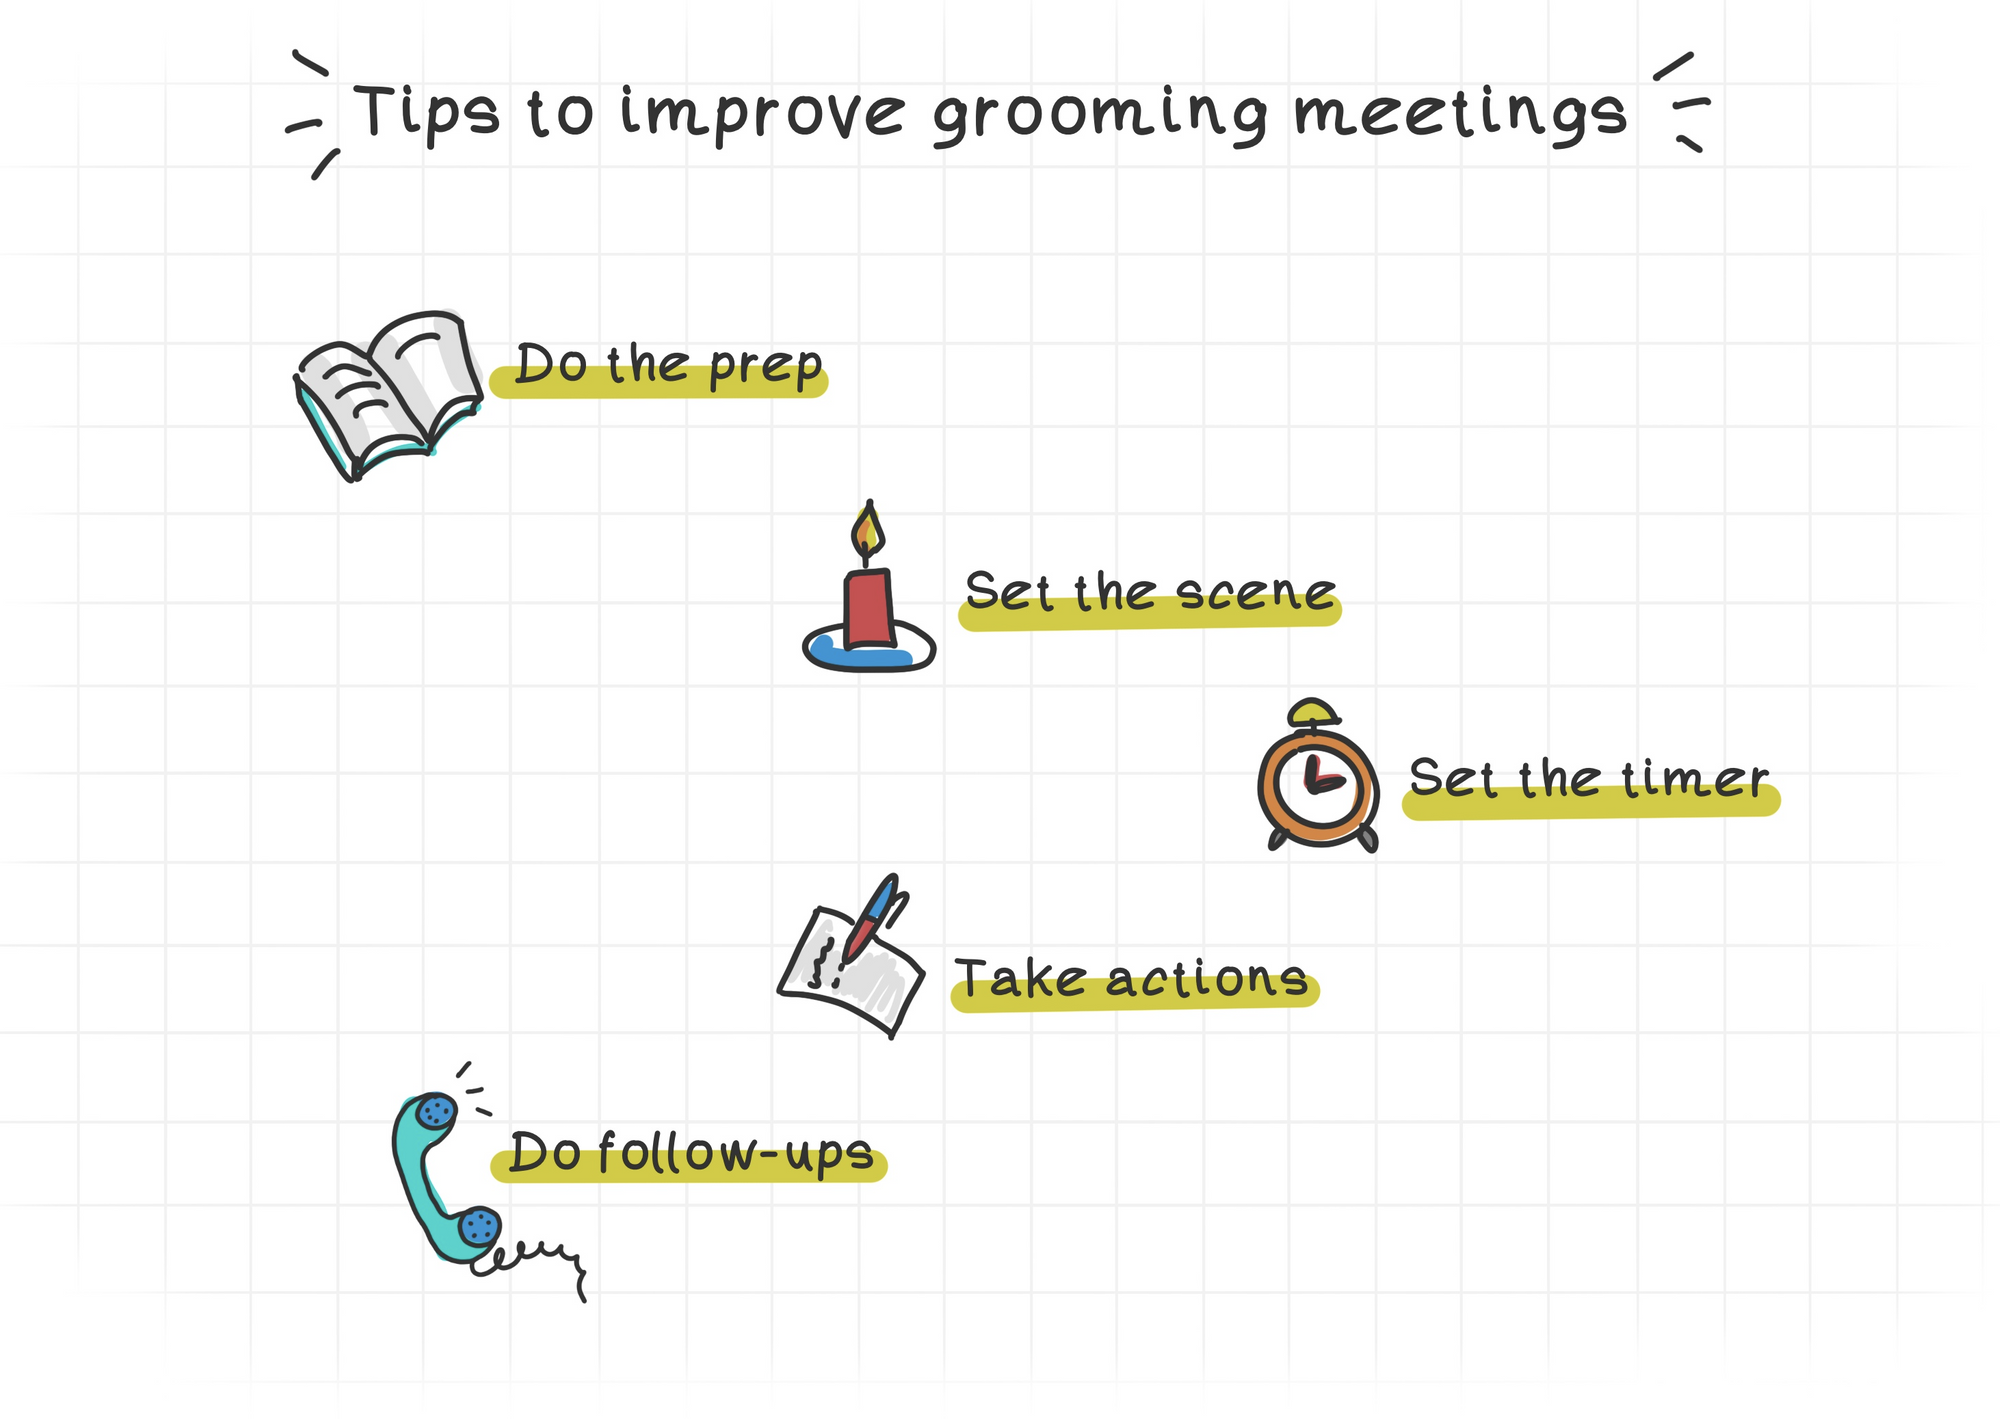 Improve your backlog grooming meetings with these tips